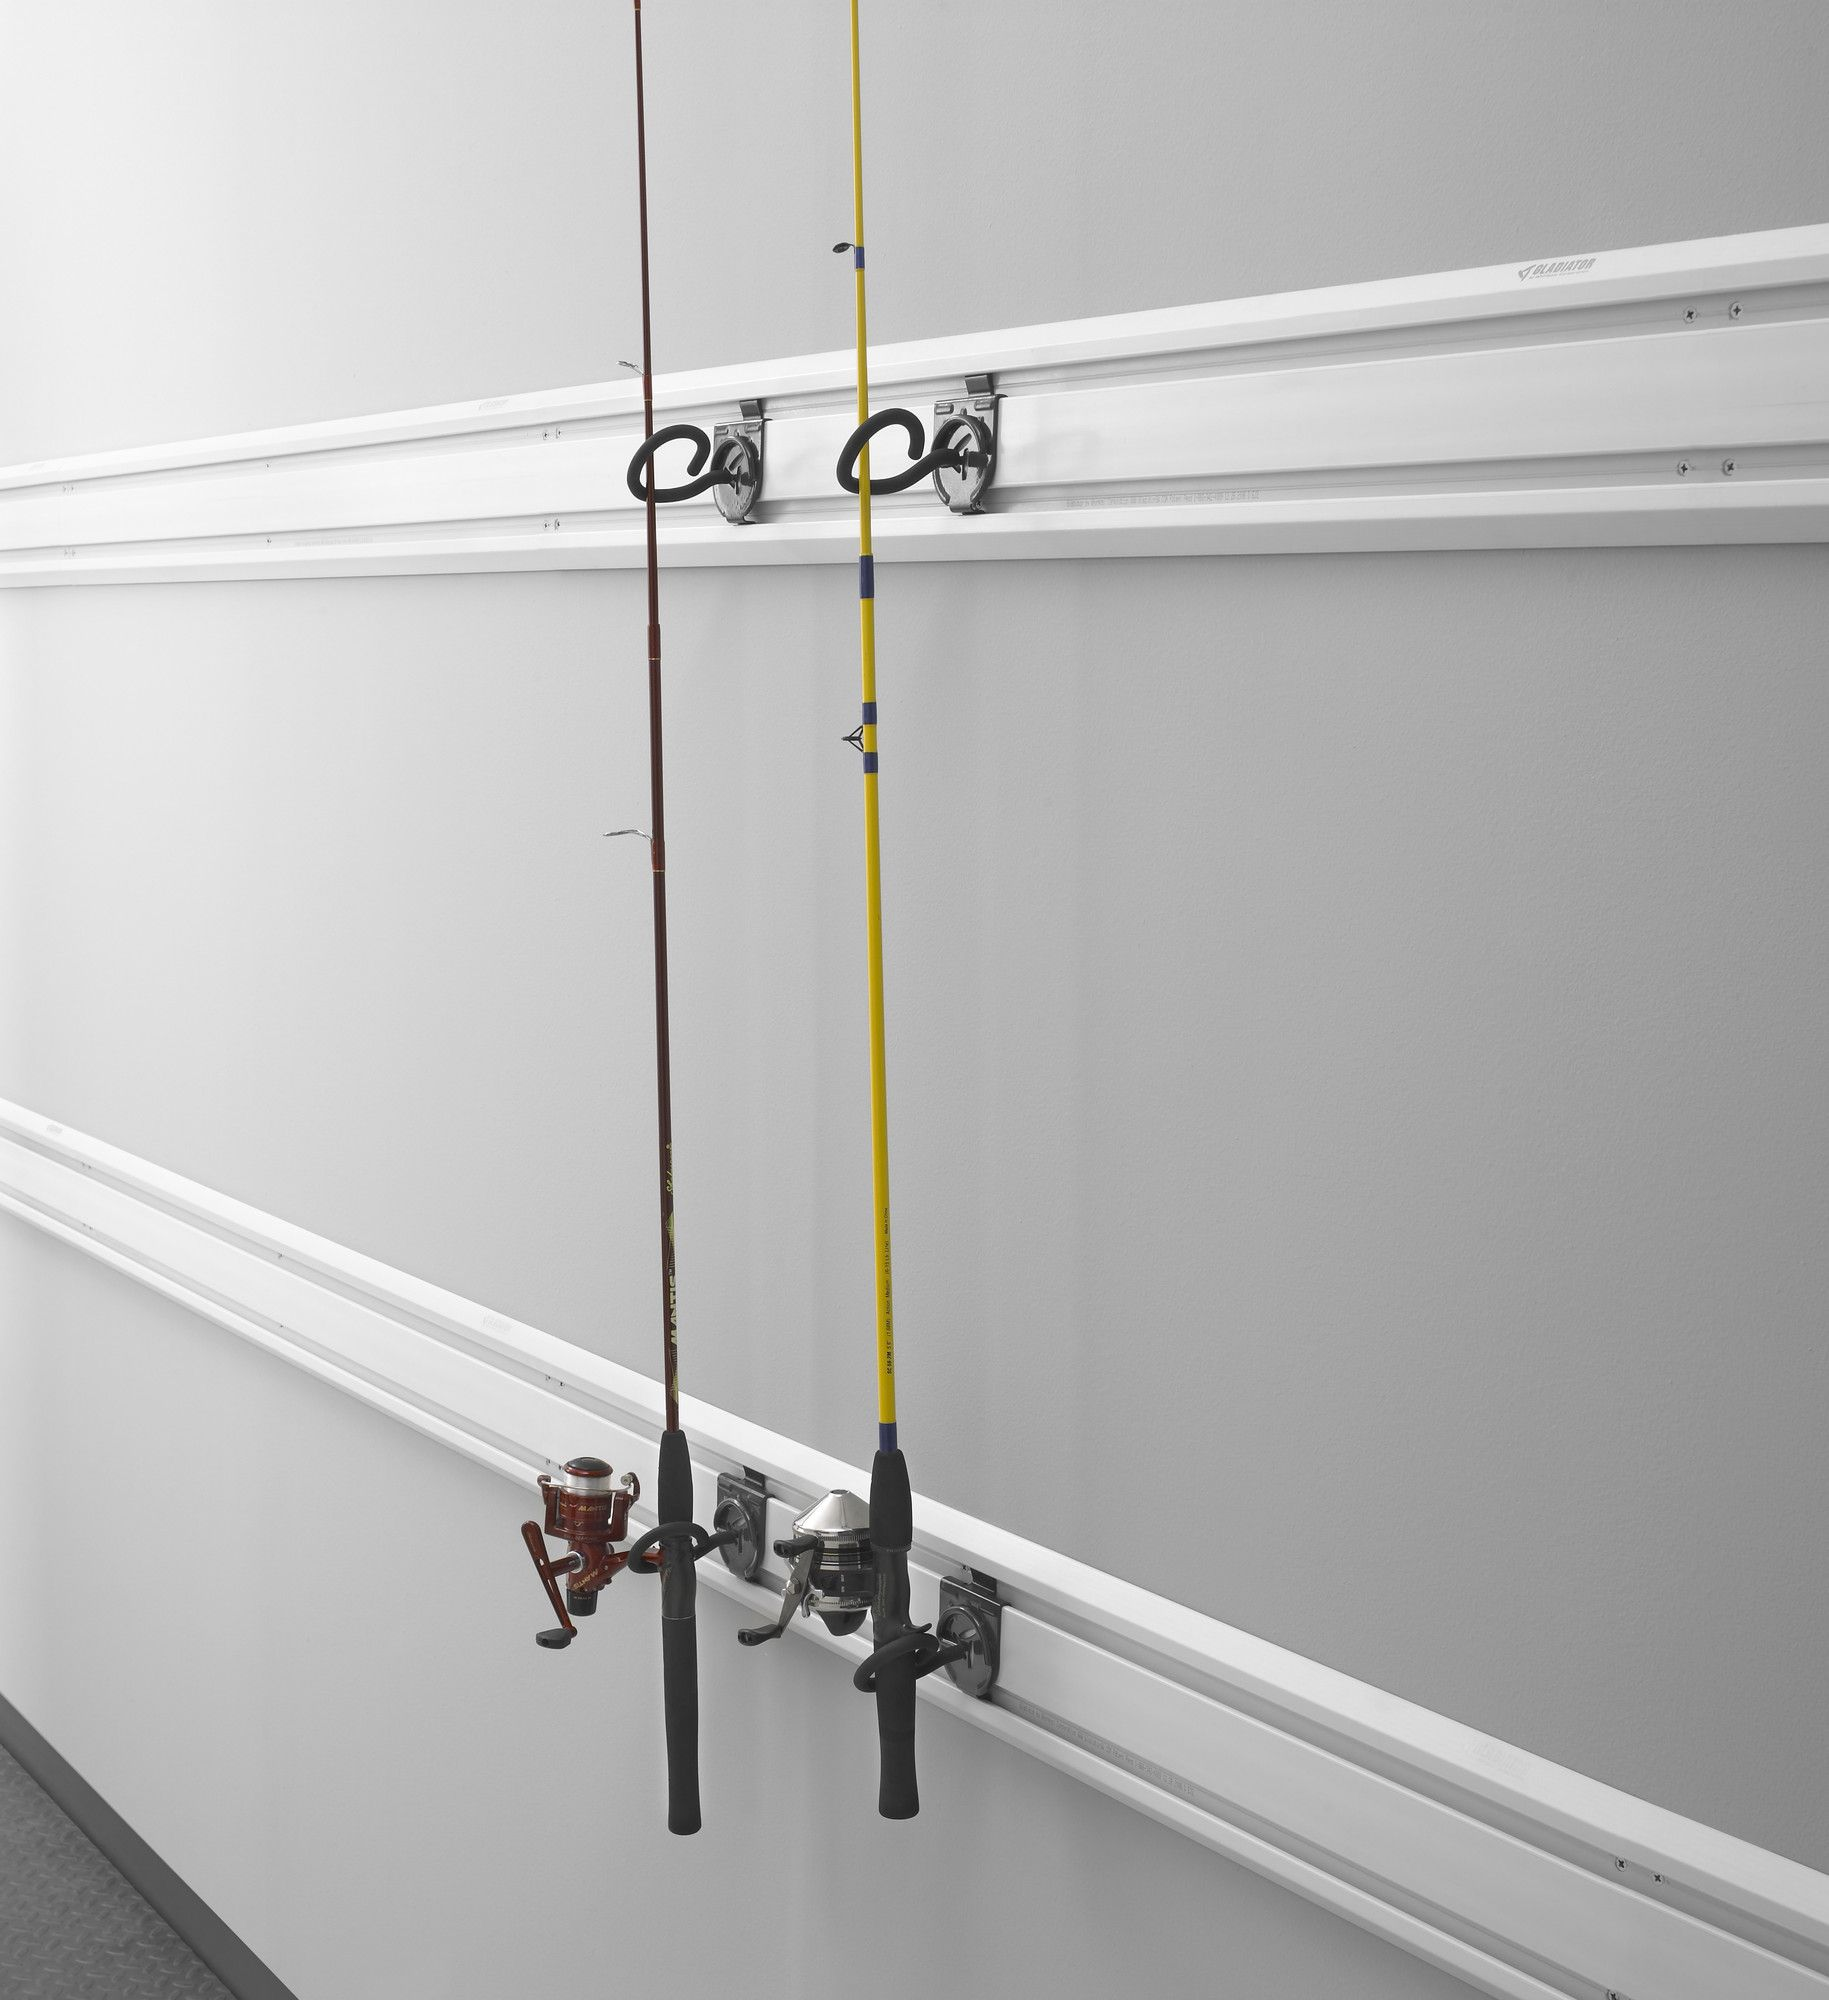 Fishing Rod Holder Fishing Pole Holder Fishing Pole Storage Fishing Rod Storage